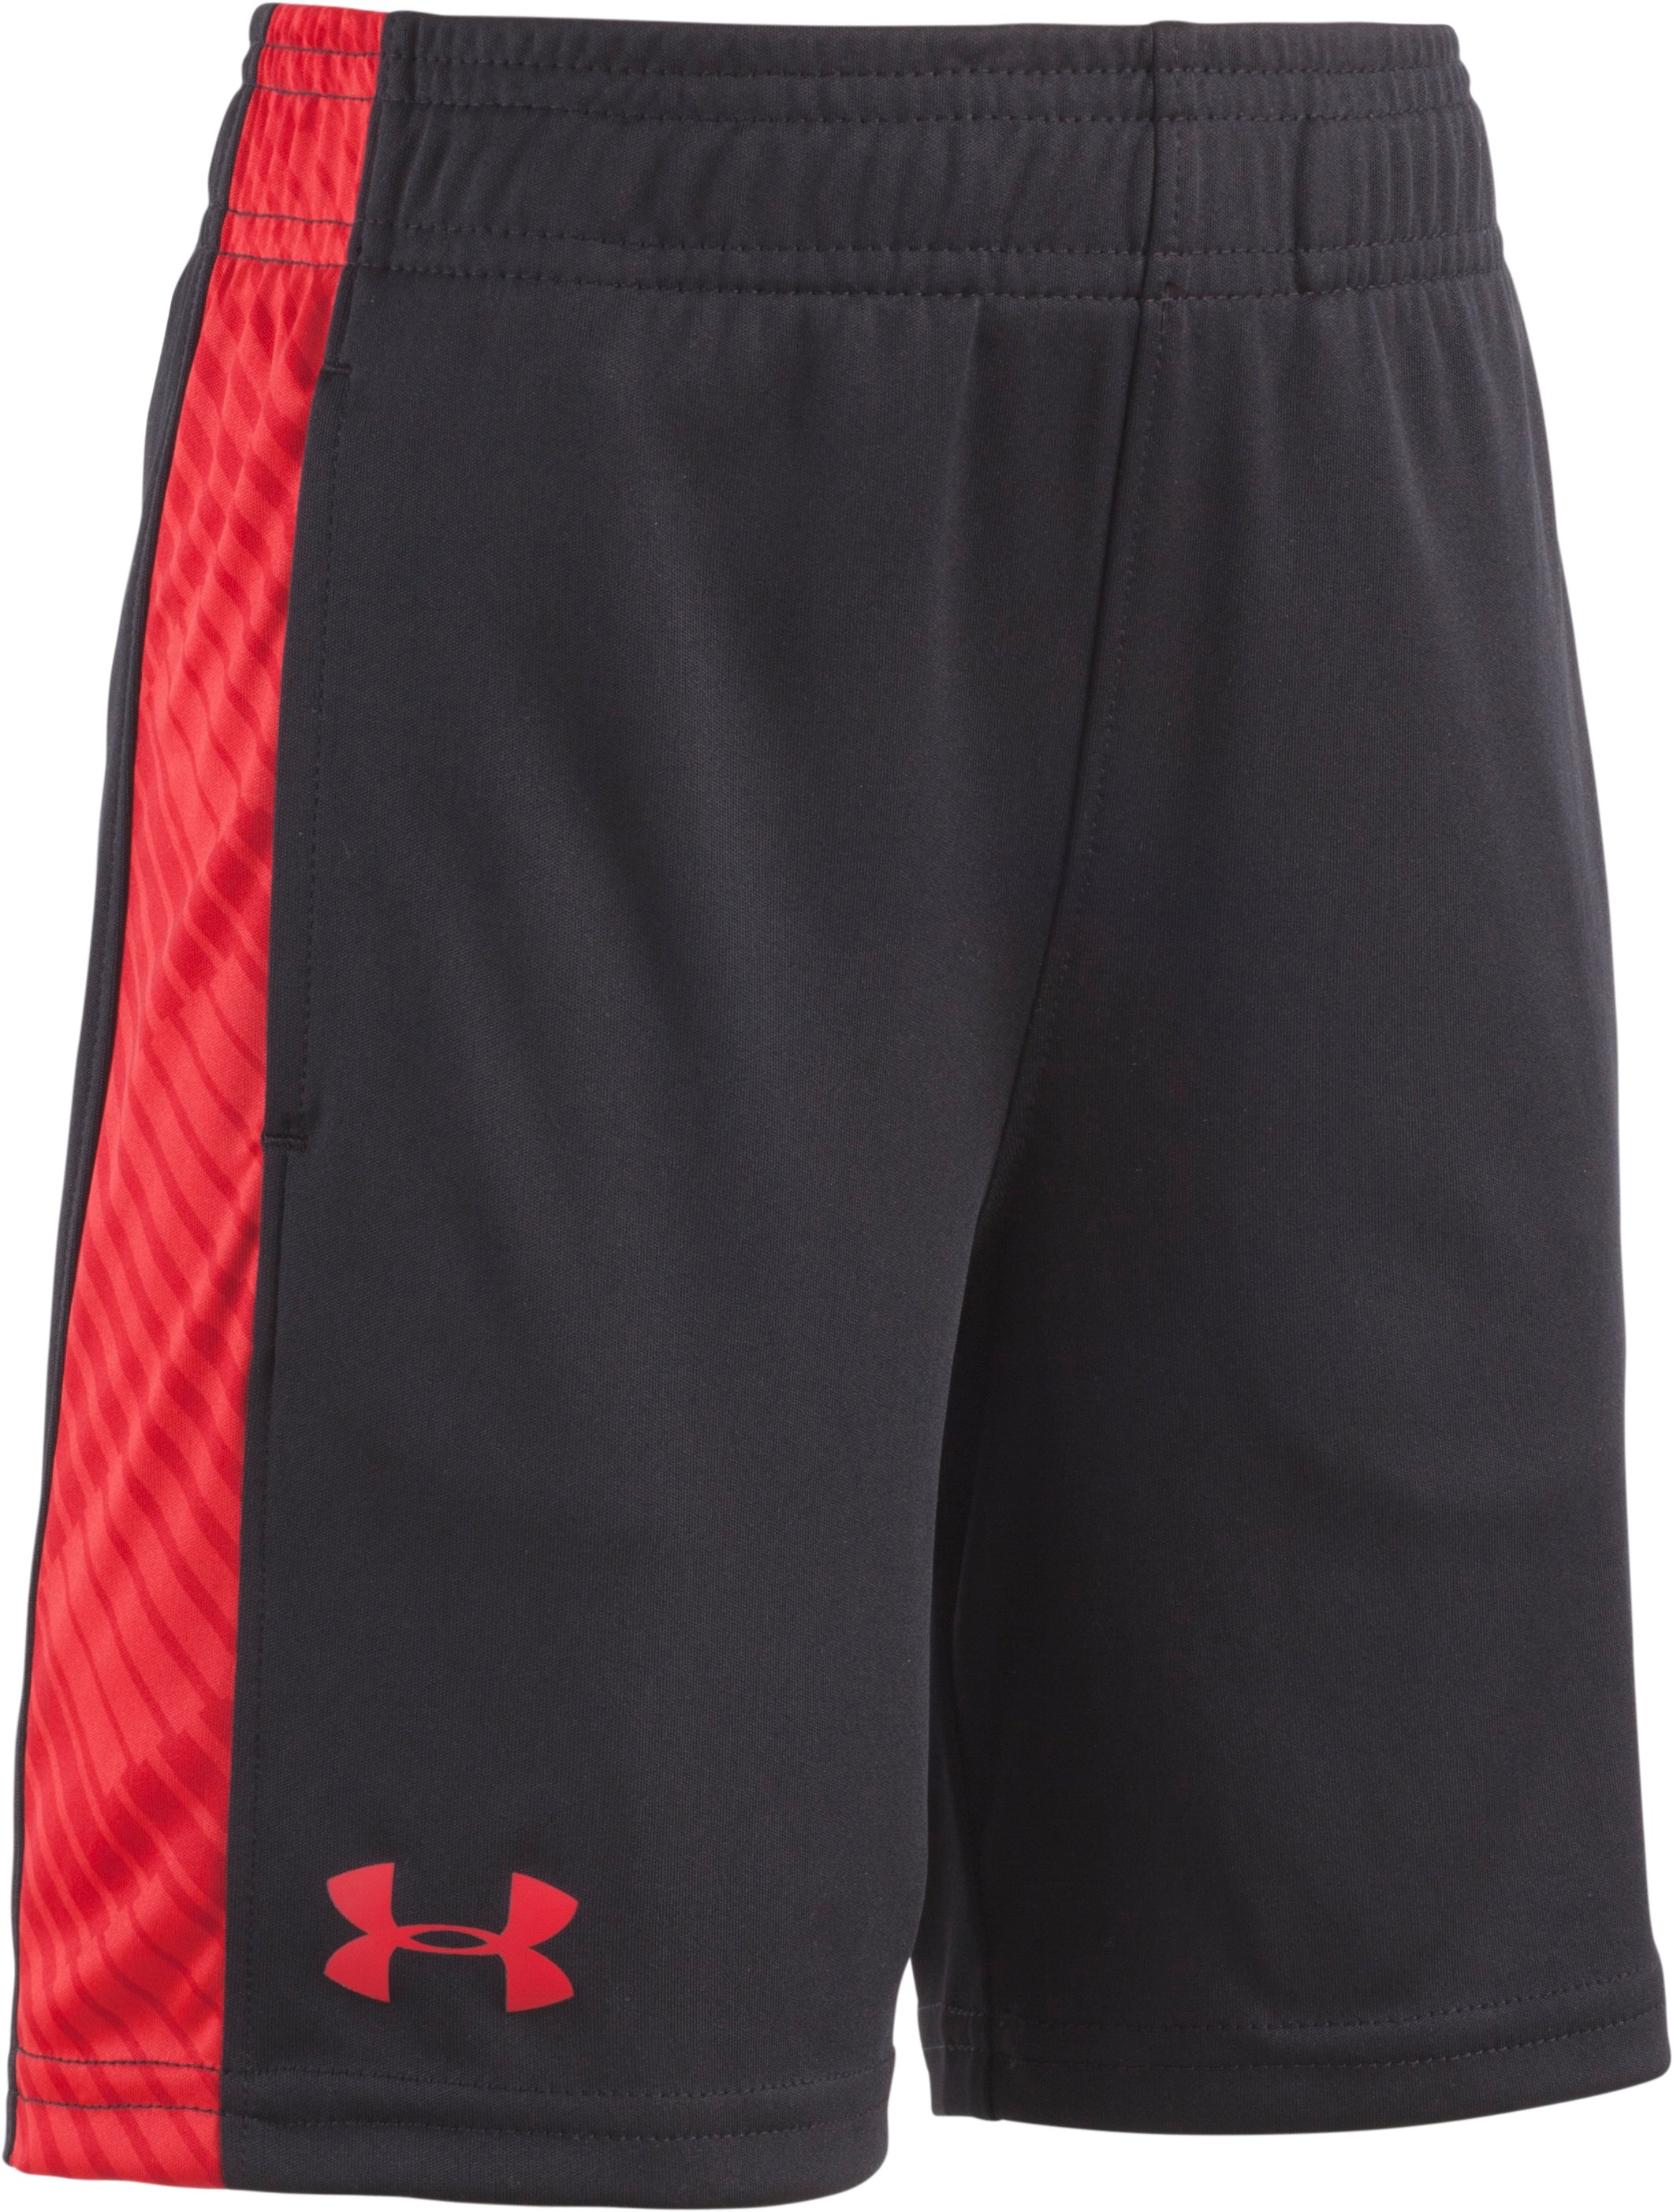 Boys' Pre-School UA Tilt Shift Eliminator Shorts, Black